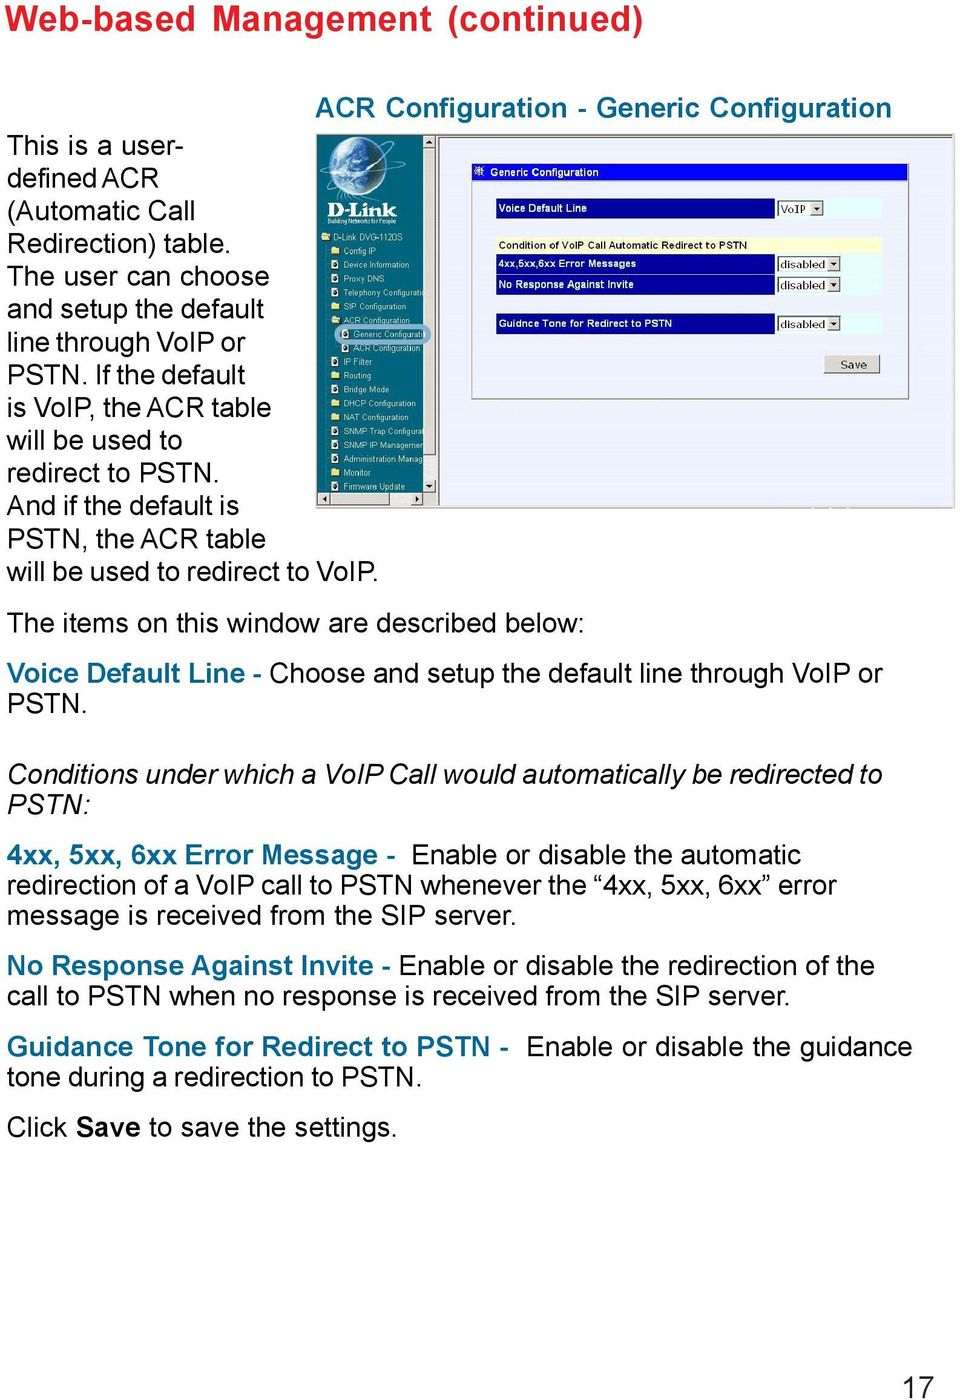 And if the default is PSTN, the ACR table will be used to redirect to VoIP. The items on this window are described below: Voice Default Line - Choose and setup the default line through VoIP or PSTN.